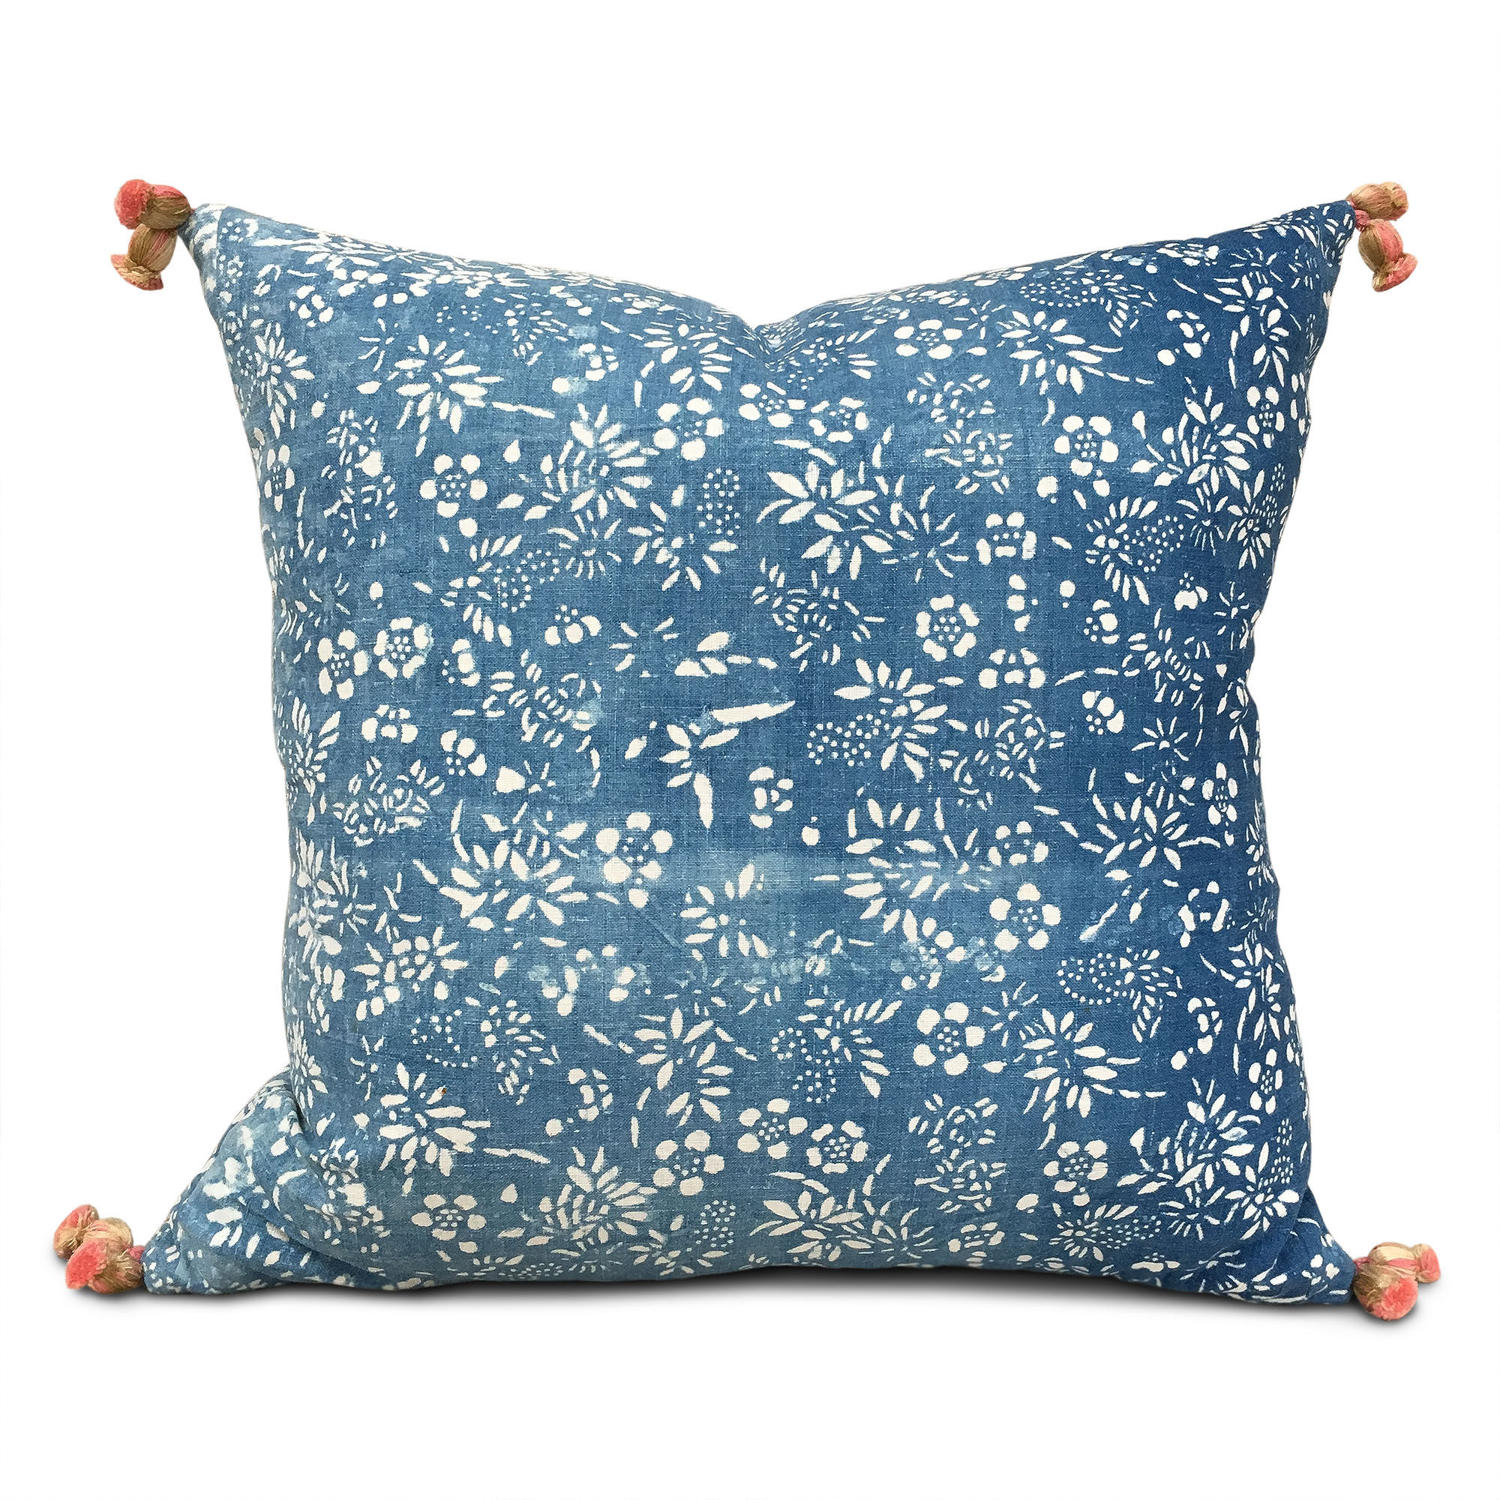 Indigo Resist Cushions with Tassels